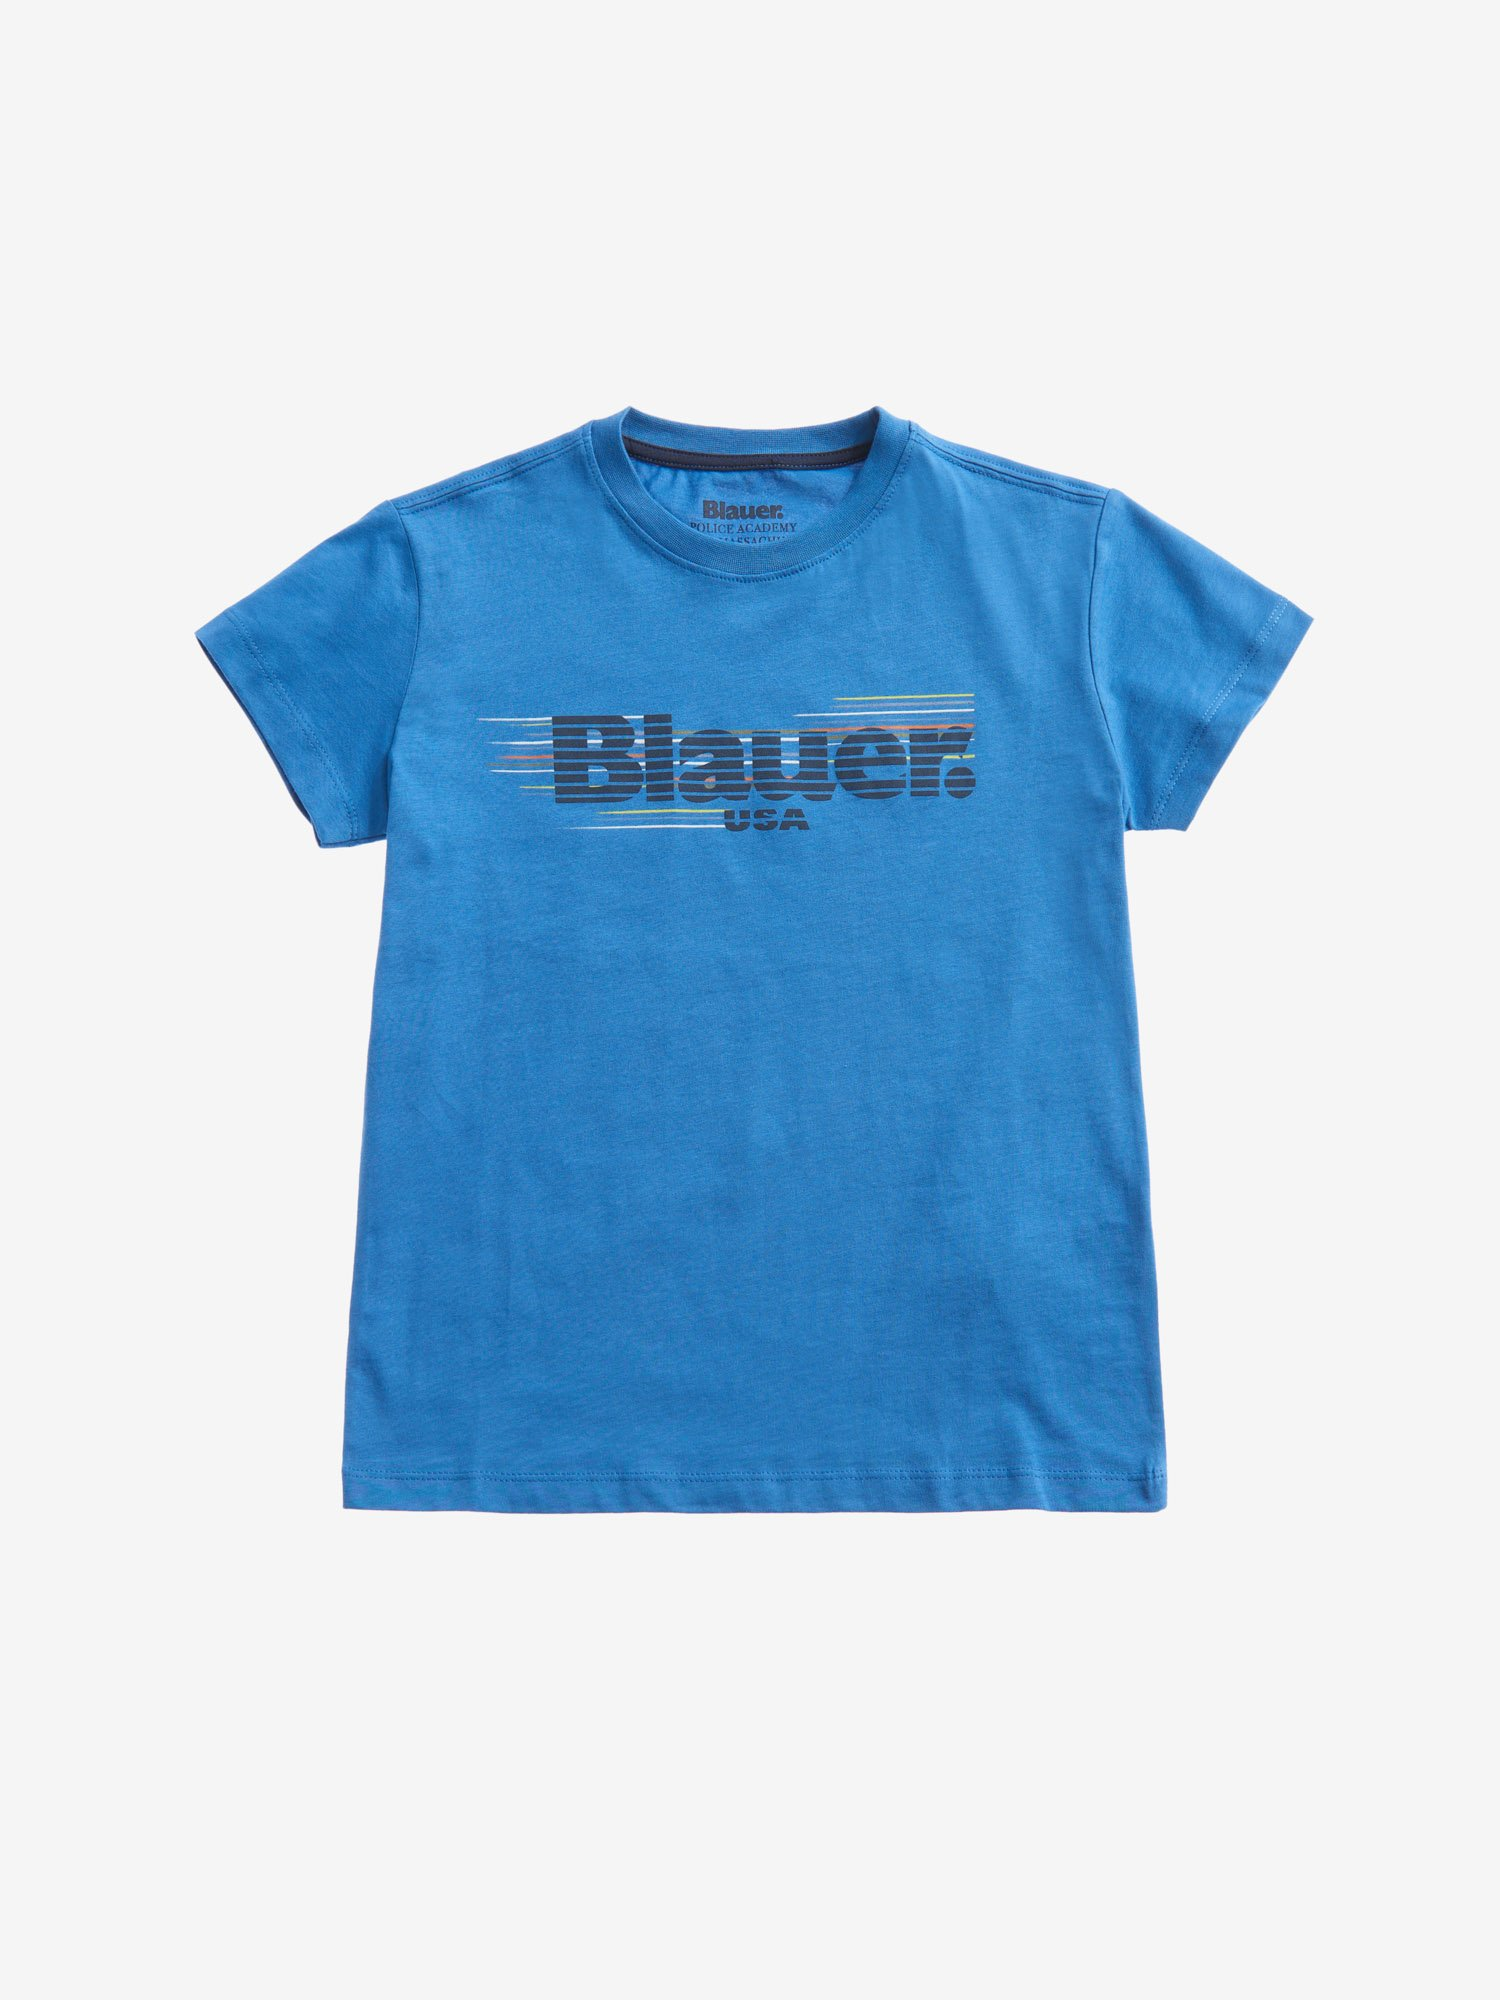 BLAUER STRIPED T-SHIRT - Blauer